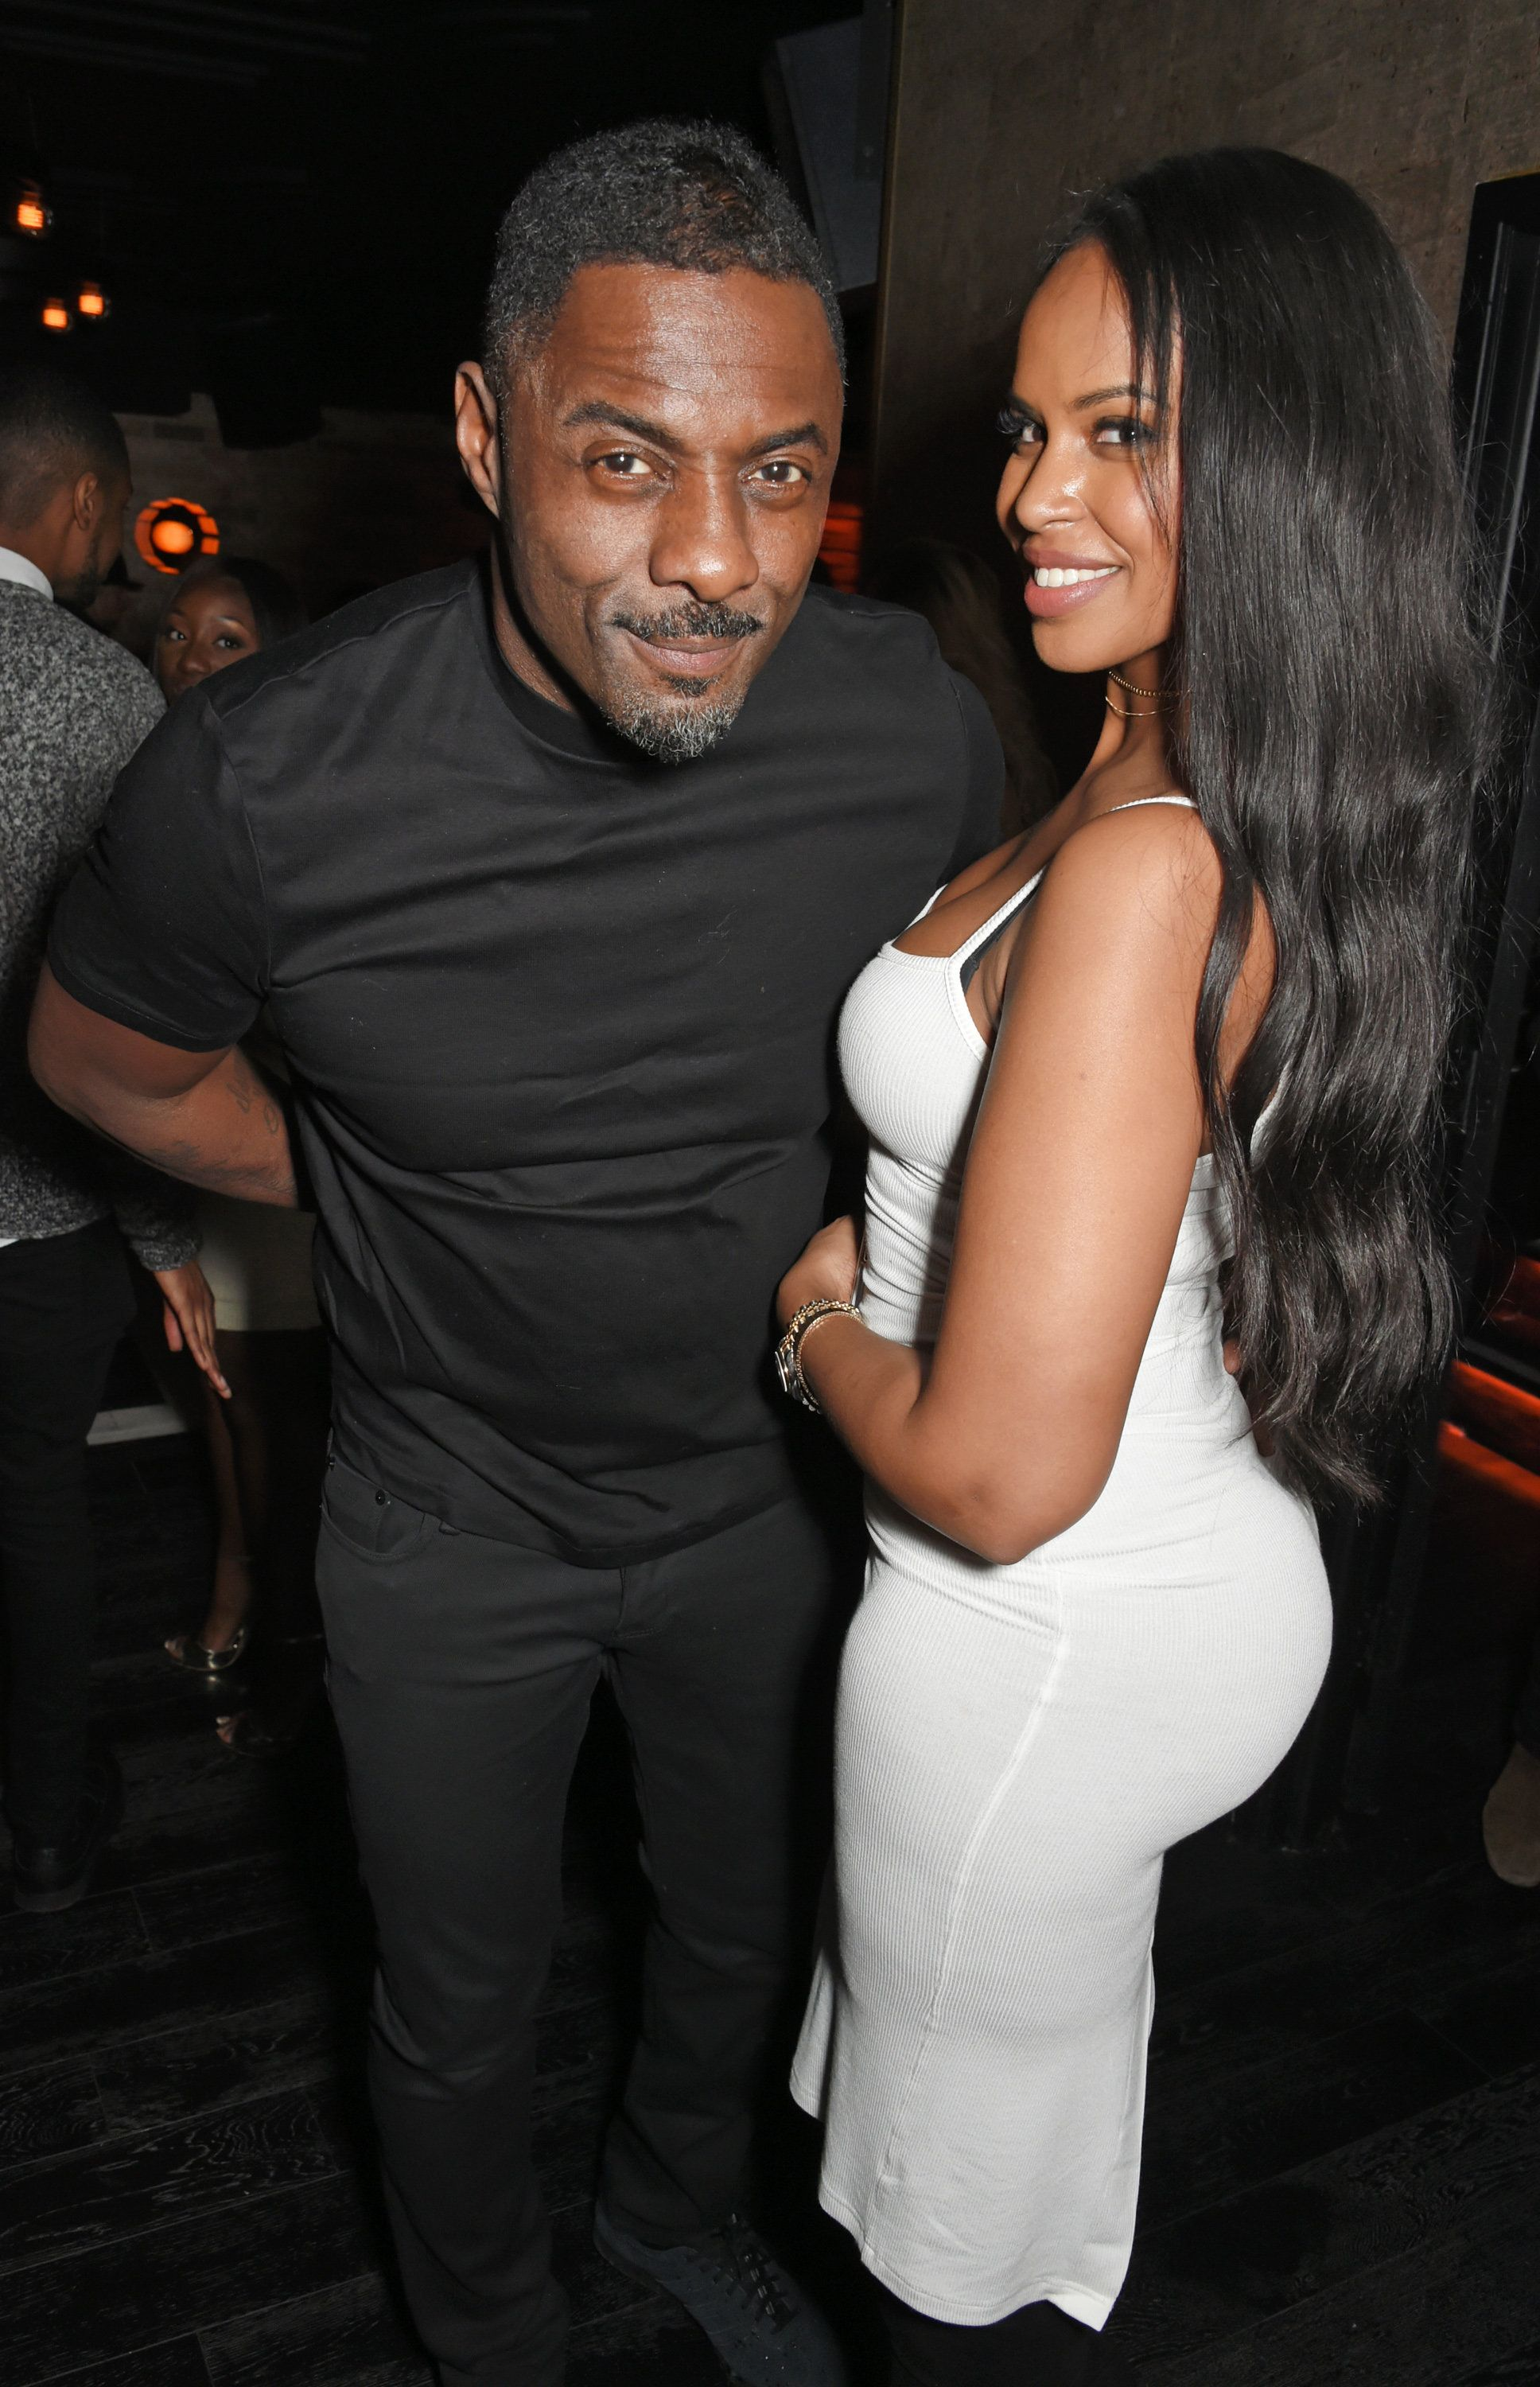 LONDON, ENGLAND - DECEMBER 09:  Idris Elba (L) and Sabrina Dhowre attend Idris Elba's Christmas Party at Kadie's Cocktail Bar & Club on December 9, 2017 in London, England.  (Photo by David M. Benett/Dave Benett/Getty Images)